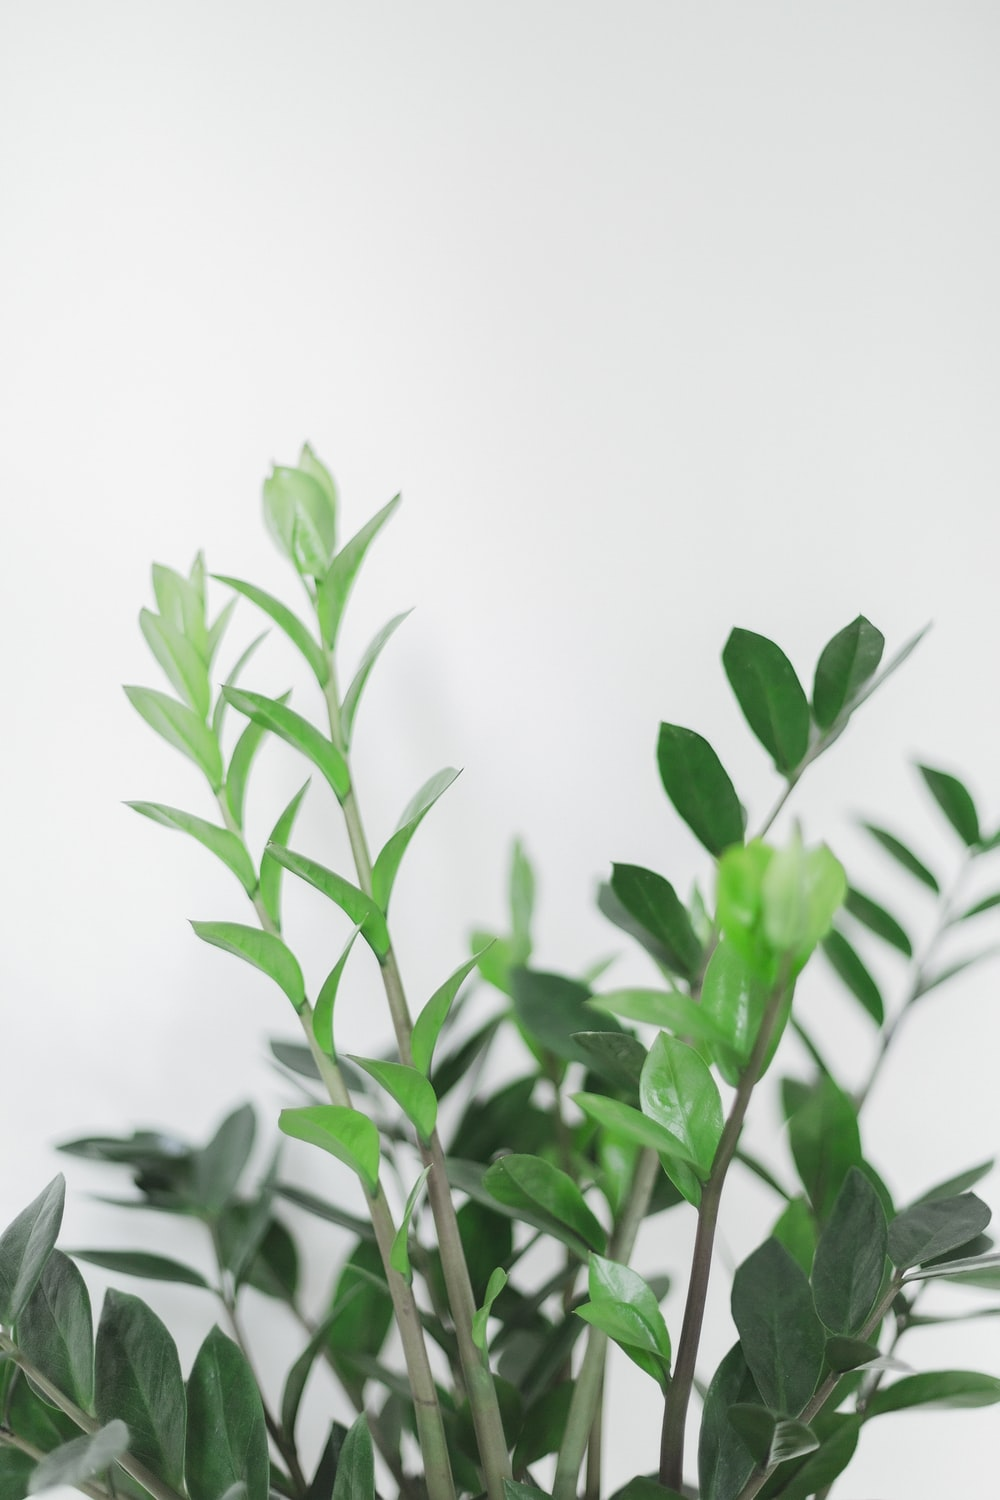 green plant in white background